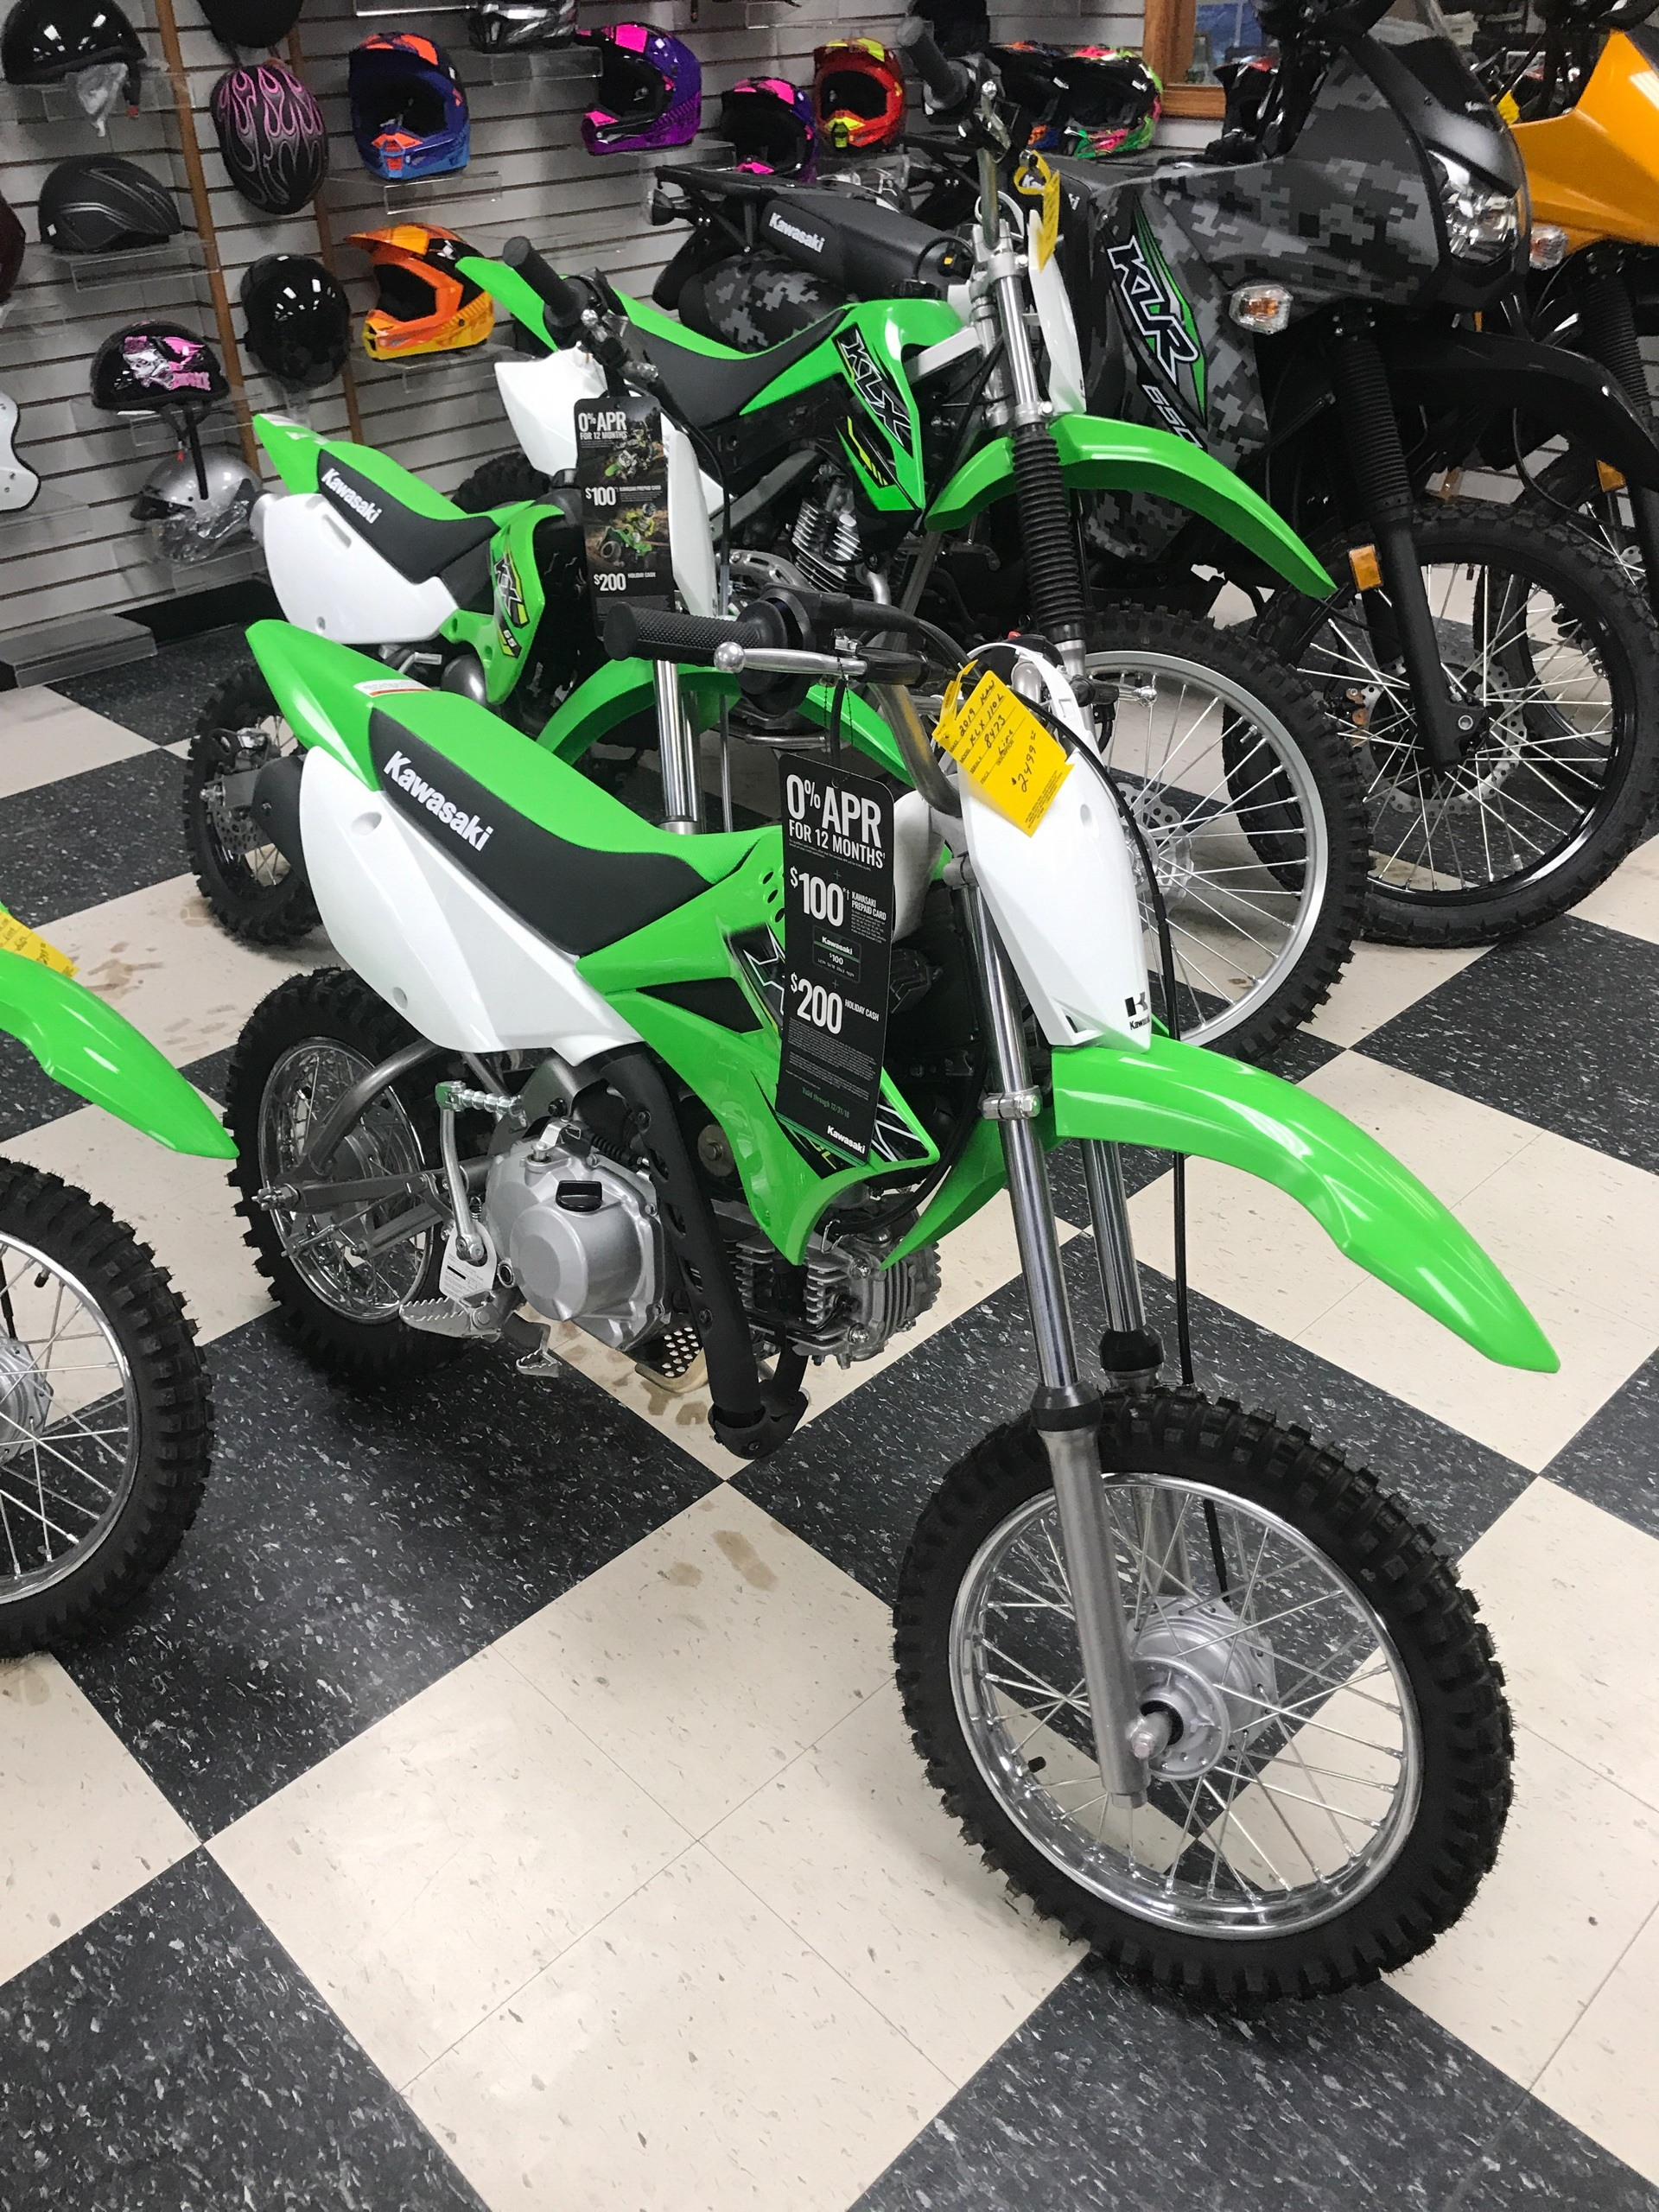 2019 Kawasaki KLX 110L for sale 697